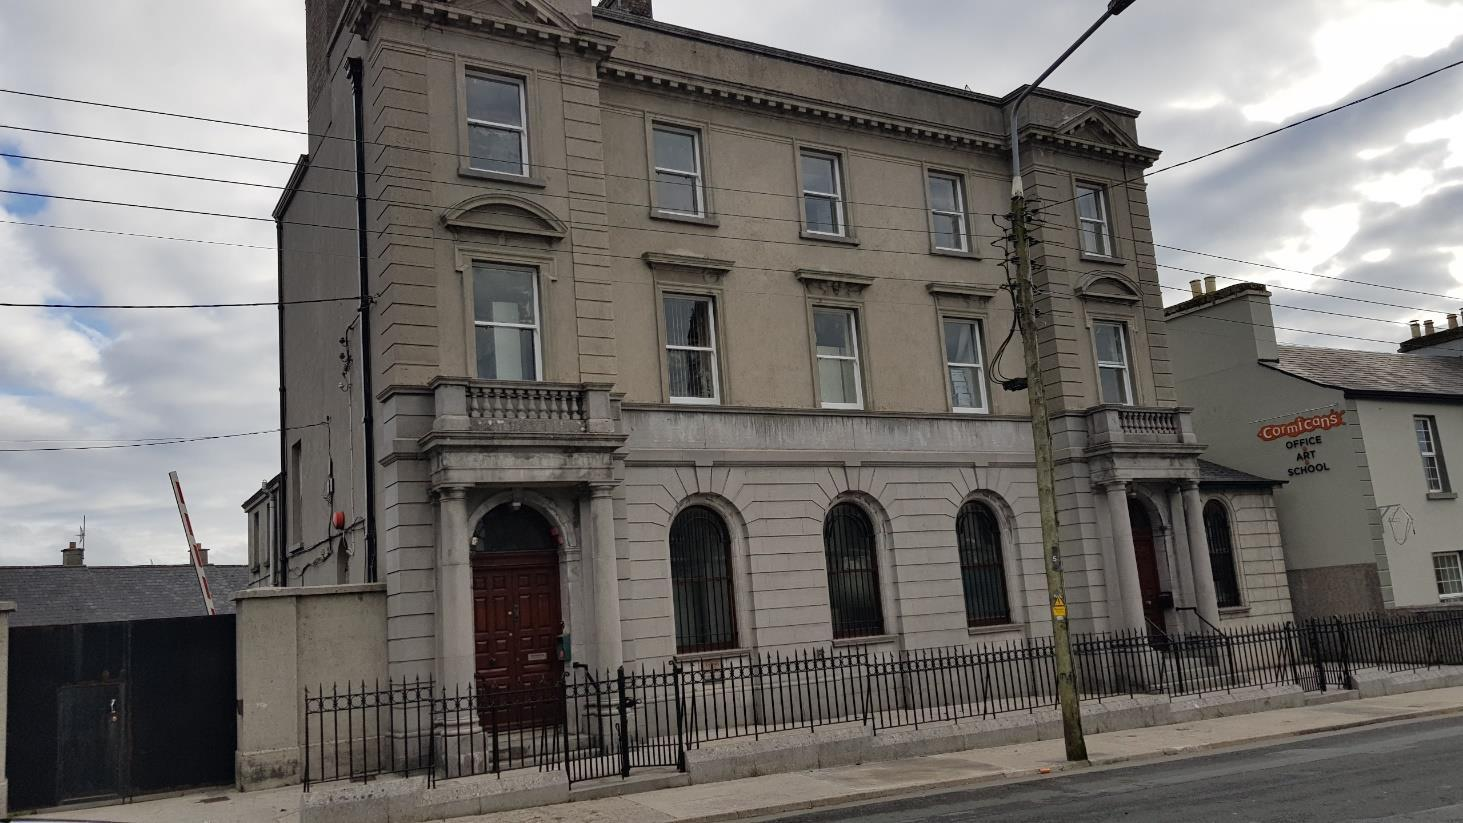 After Painting The Railings Rainwater Goods And Sash Windows Render Cleaned To Remove Algae On The Surface Of The Façade